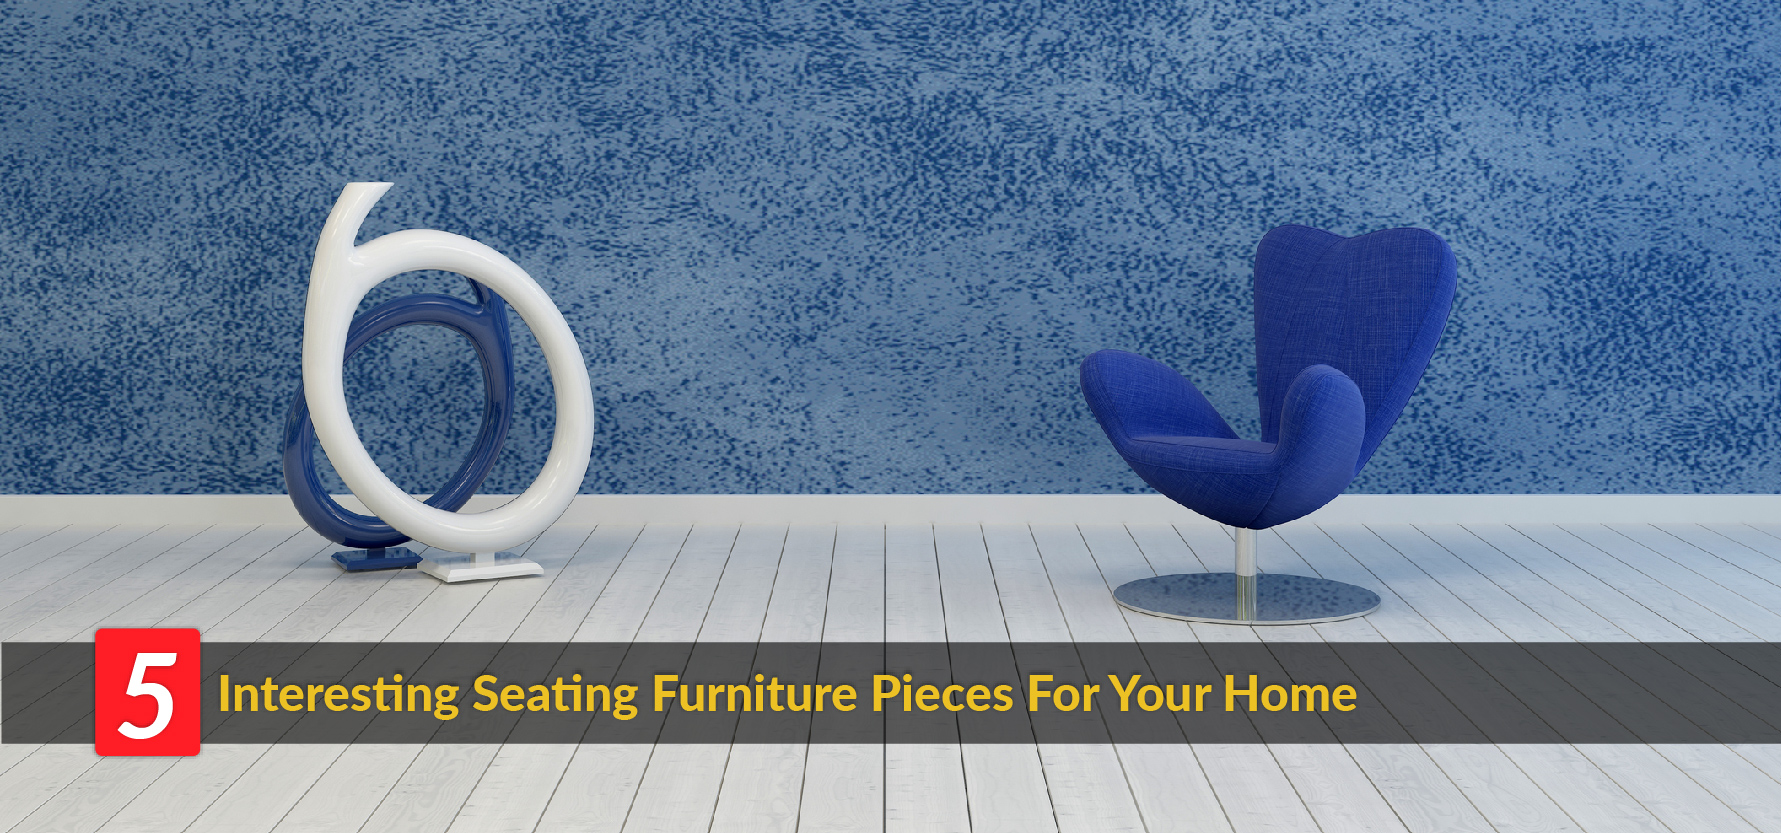 5 Interesting Seating Furniture Pieces For Your Home